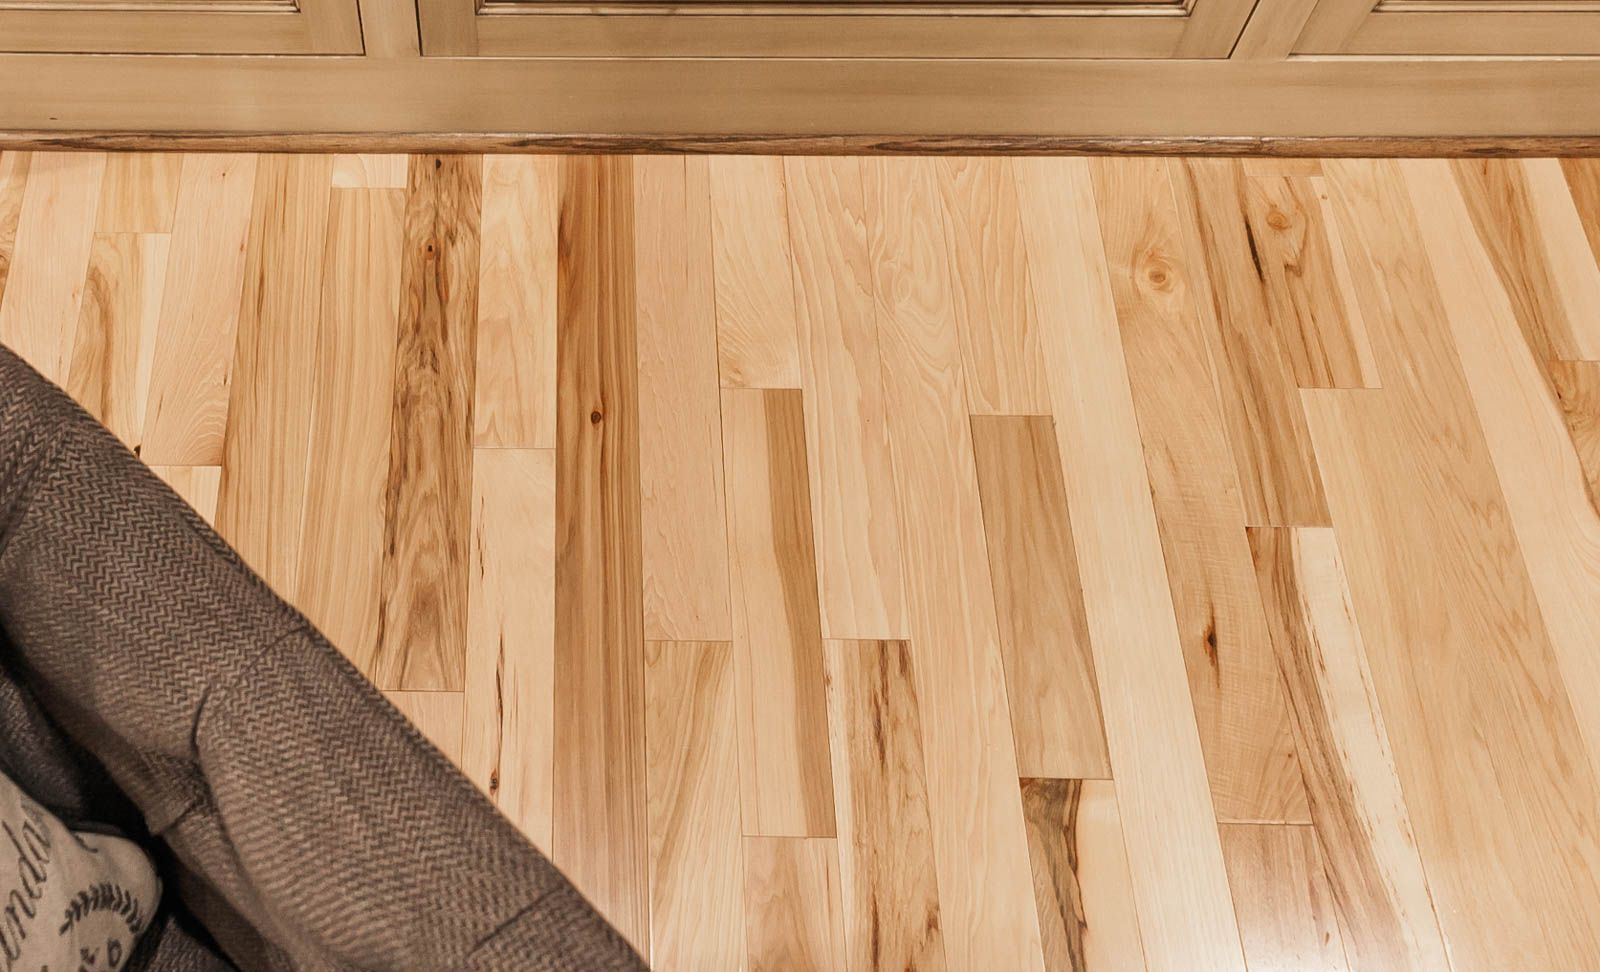 Calico Hickory Flooring In A Natural Finish Is Durable Resisting Wear And Character Single Pieces Of Range Light Dark